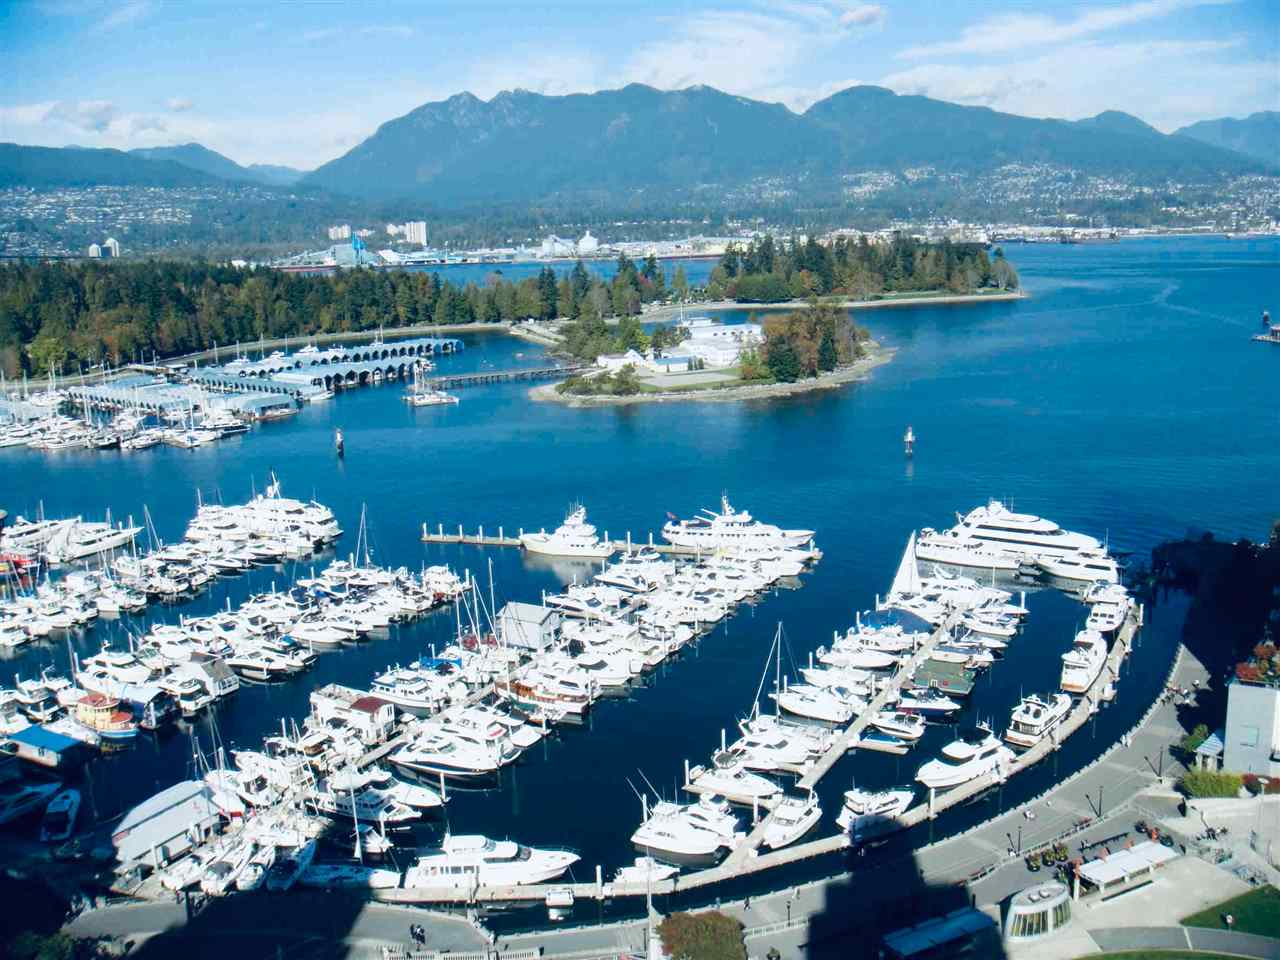 2501 555 JERVIS STREET - Coal Harbour Apartment/Condo for sale, 2 Bedrooms (R2494508) - #1